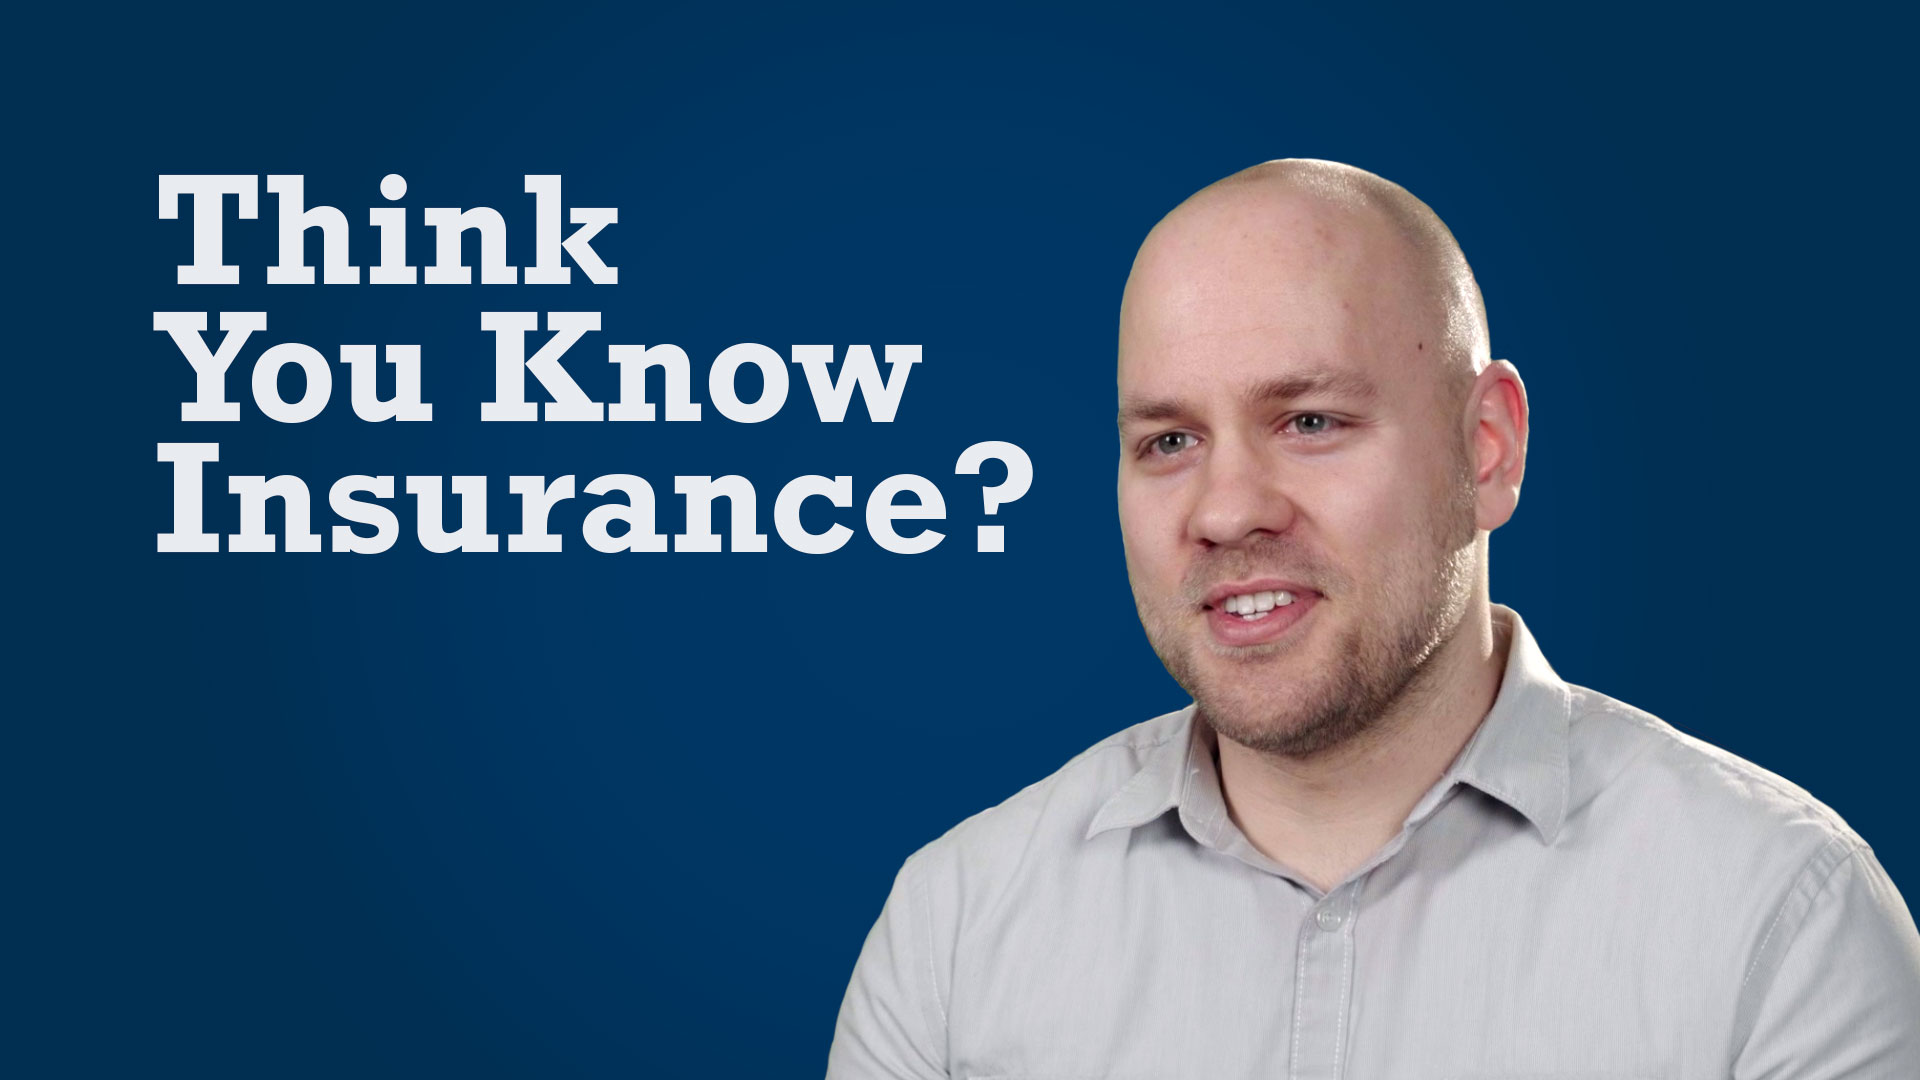 Think You Know Insurance?